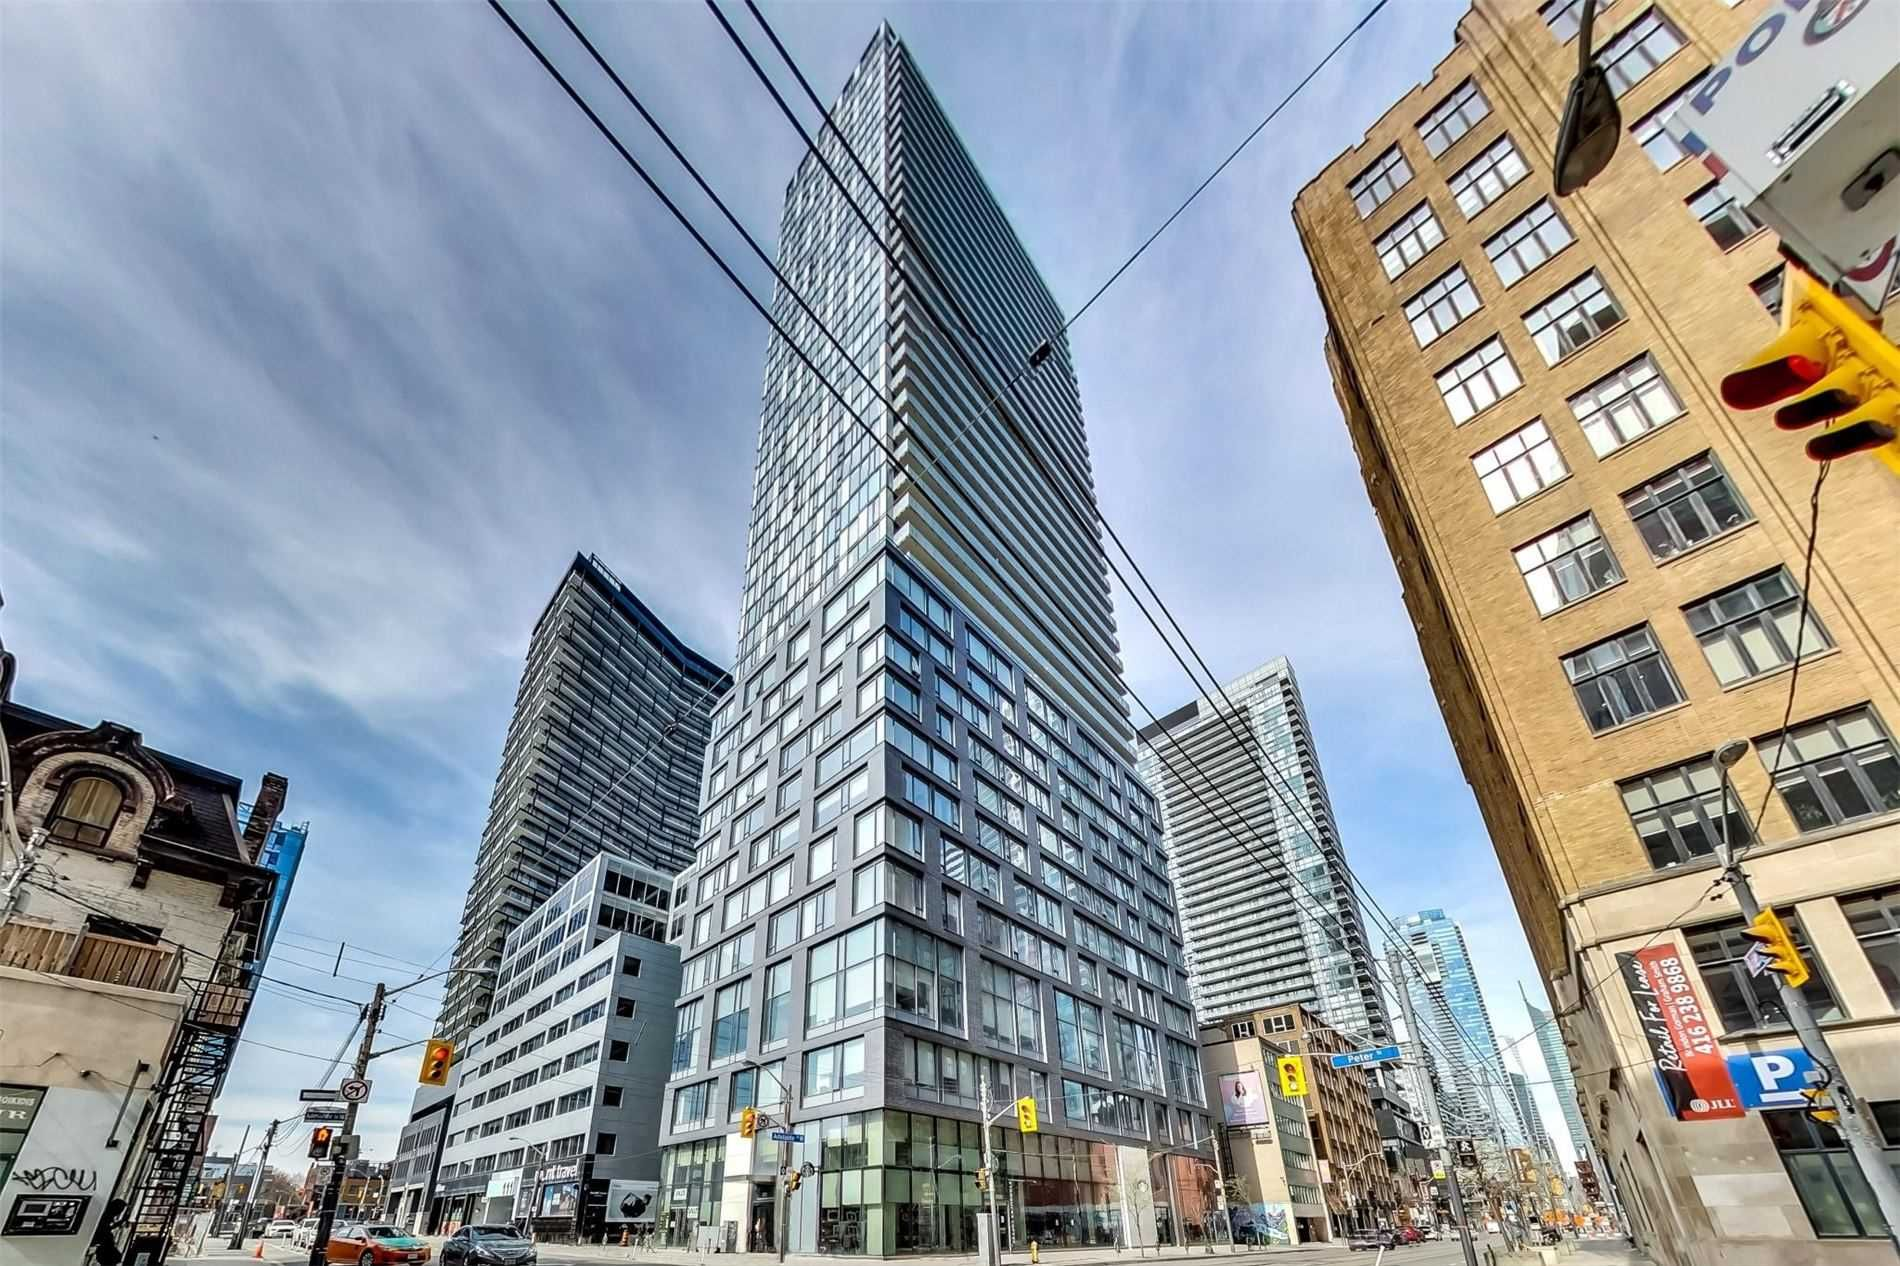 101 Peter St, unit 3109 for sale in Queen West - image #1